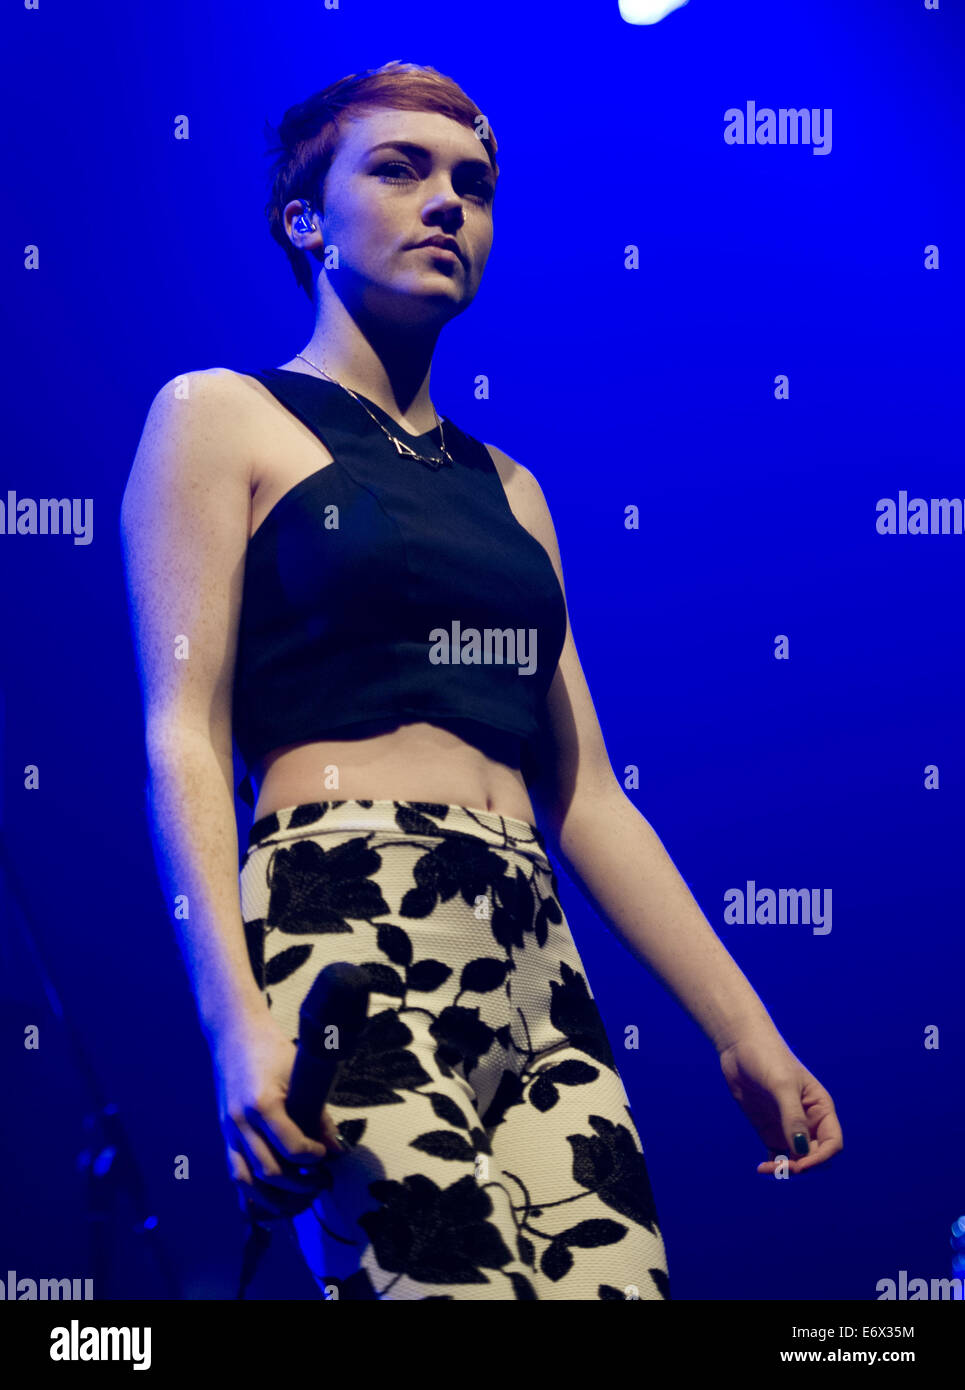 Chloe Amsterdam Chloe Howl Performs To A Sold Out Crowd At Heineken Music Hall As